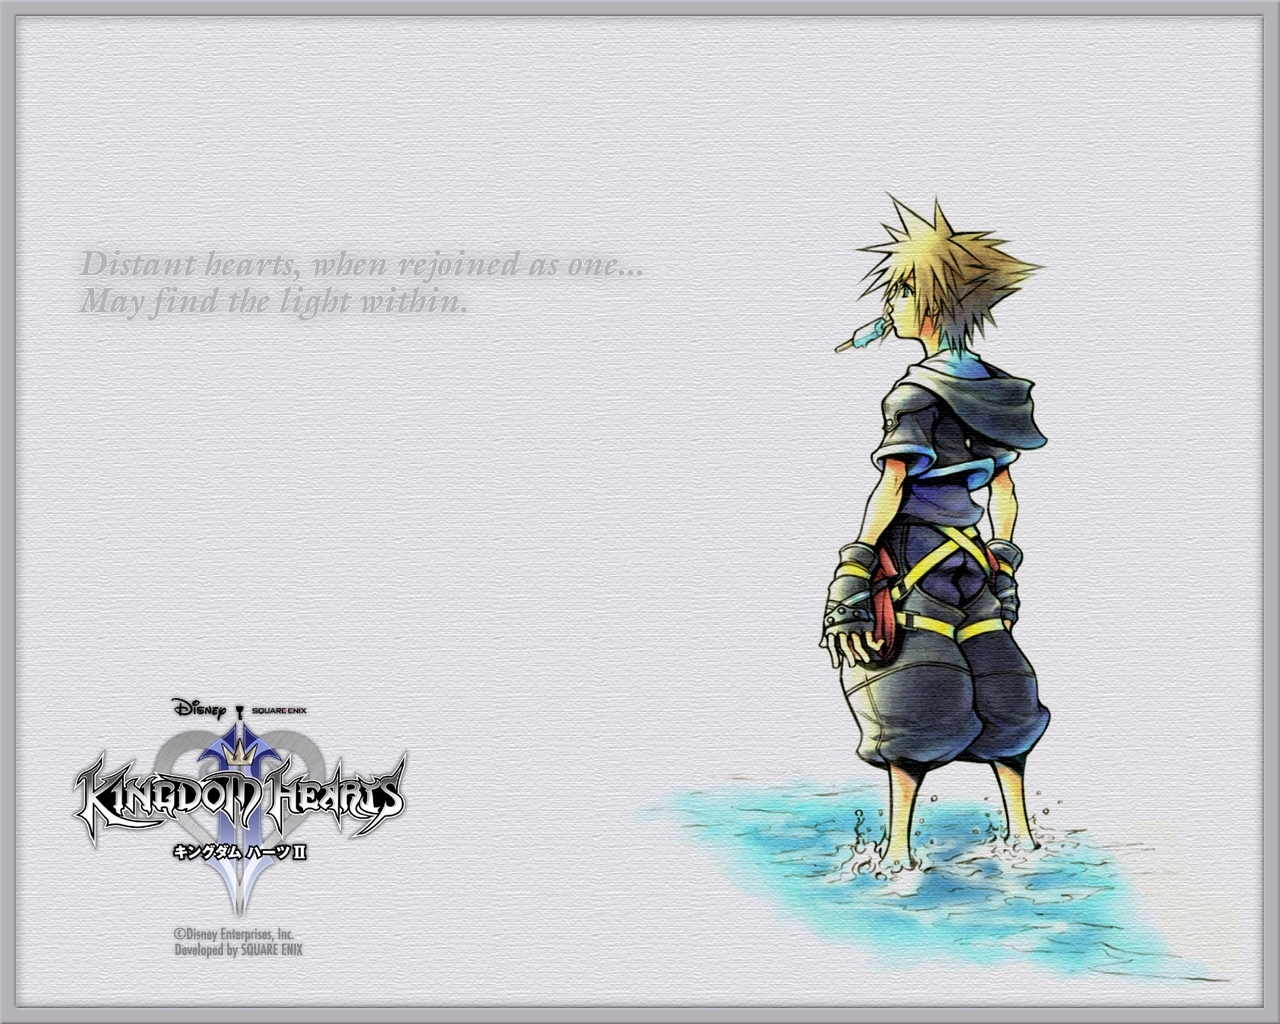 Kingdom Hearts 2